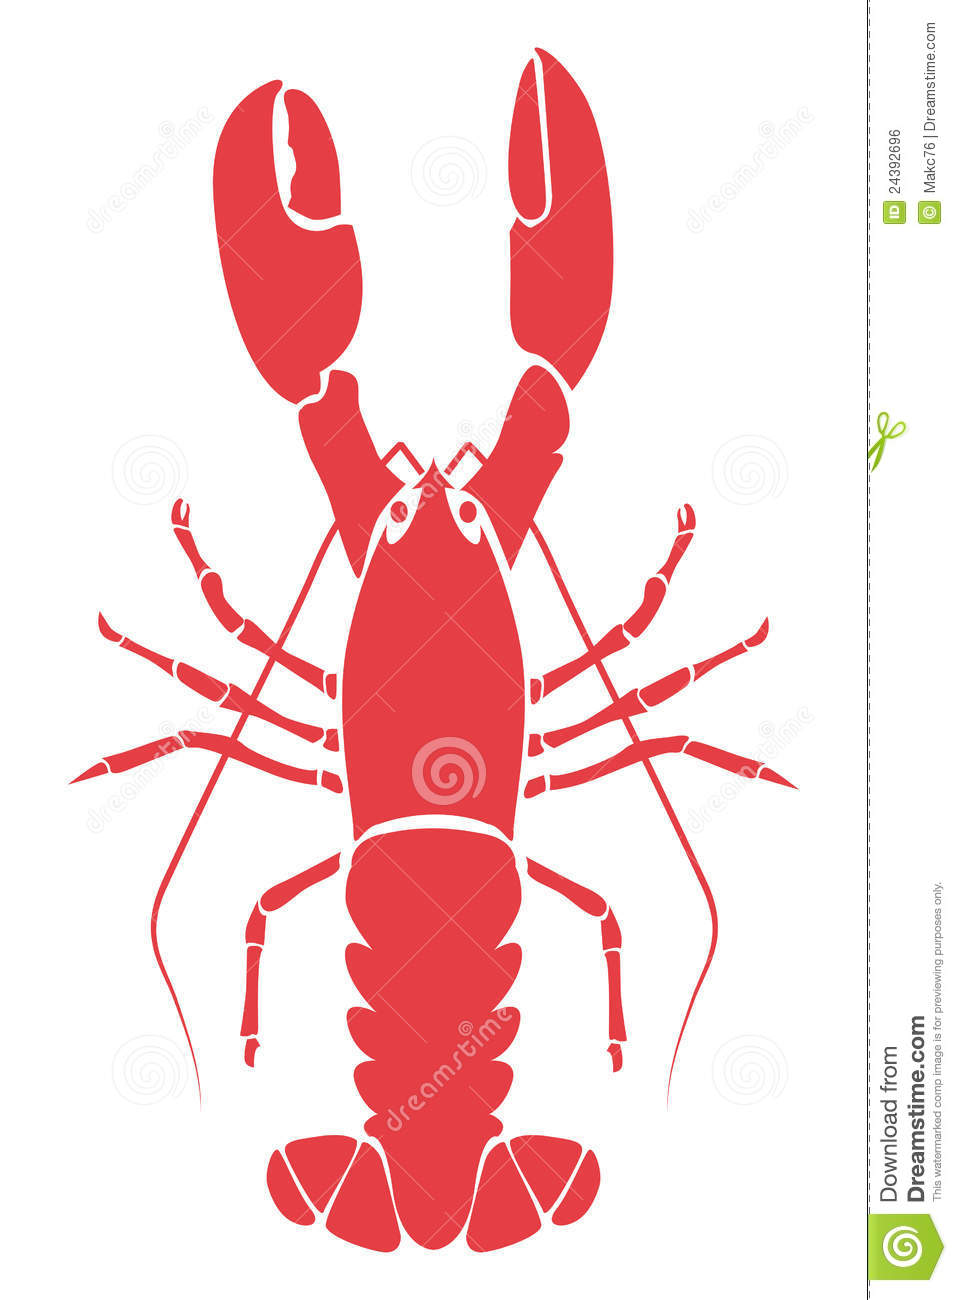 Lobster Illustration Royalty Free Stock Image - Image ...